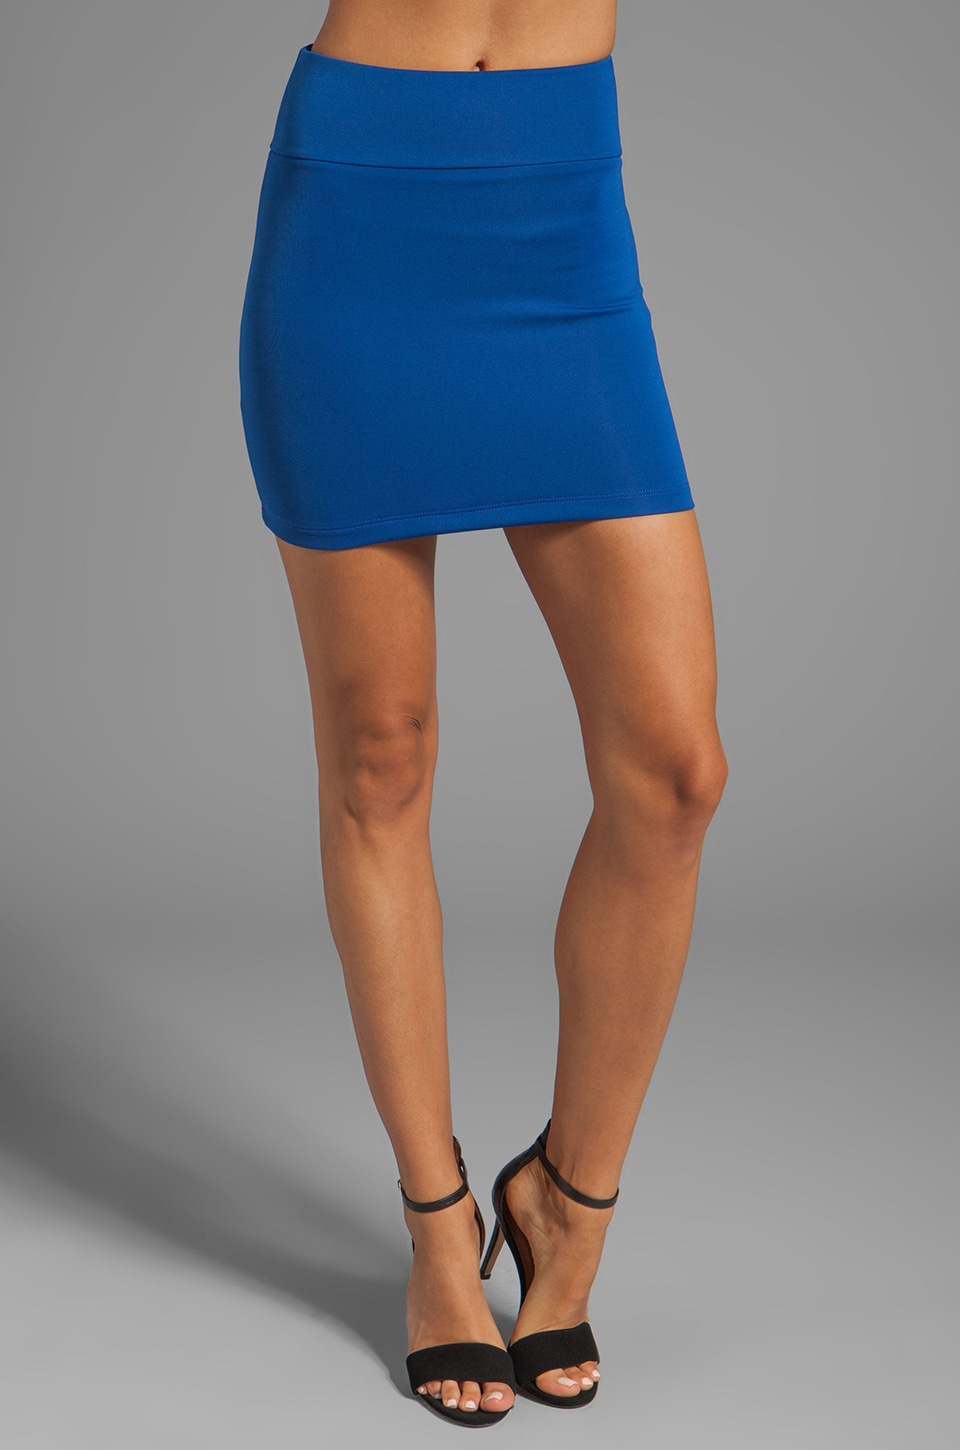 Boulee Levi Mini in Cobalt